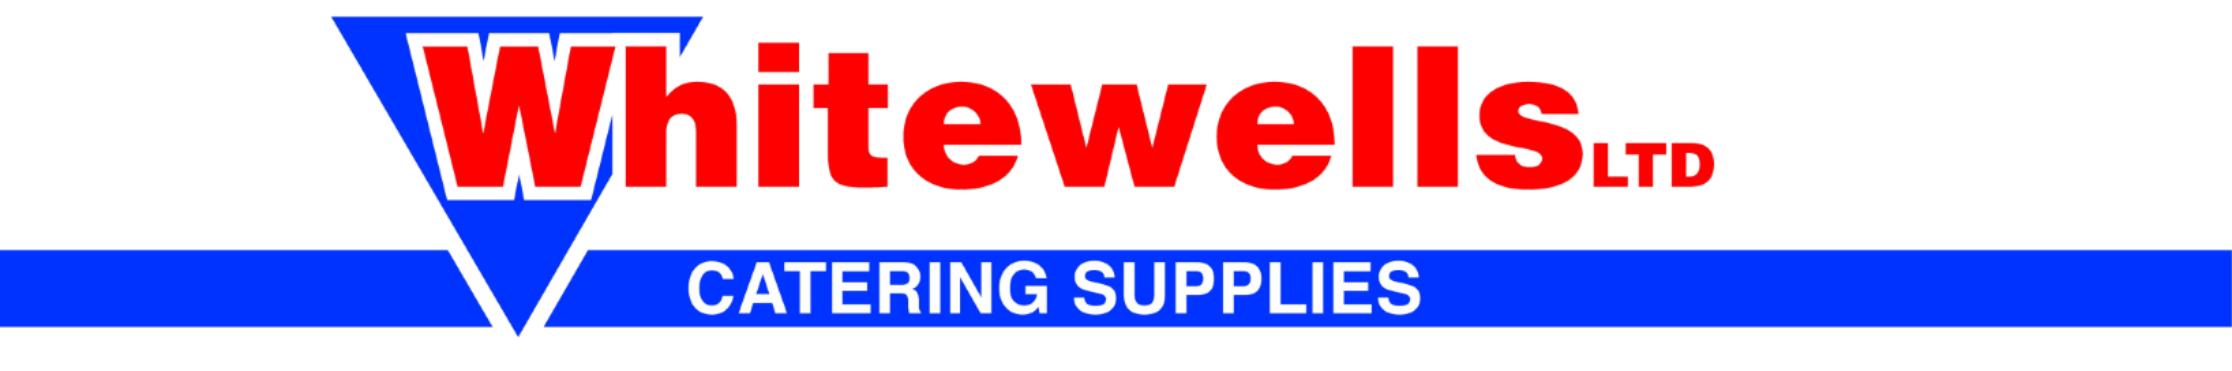 Whitewells Catering Supplies Ltd